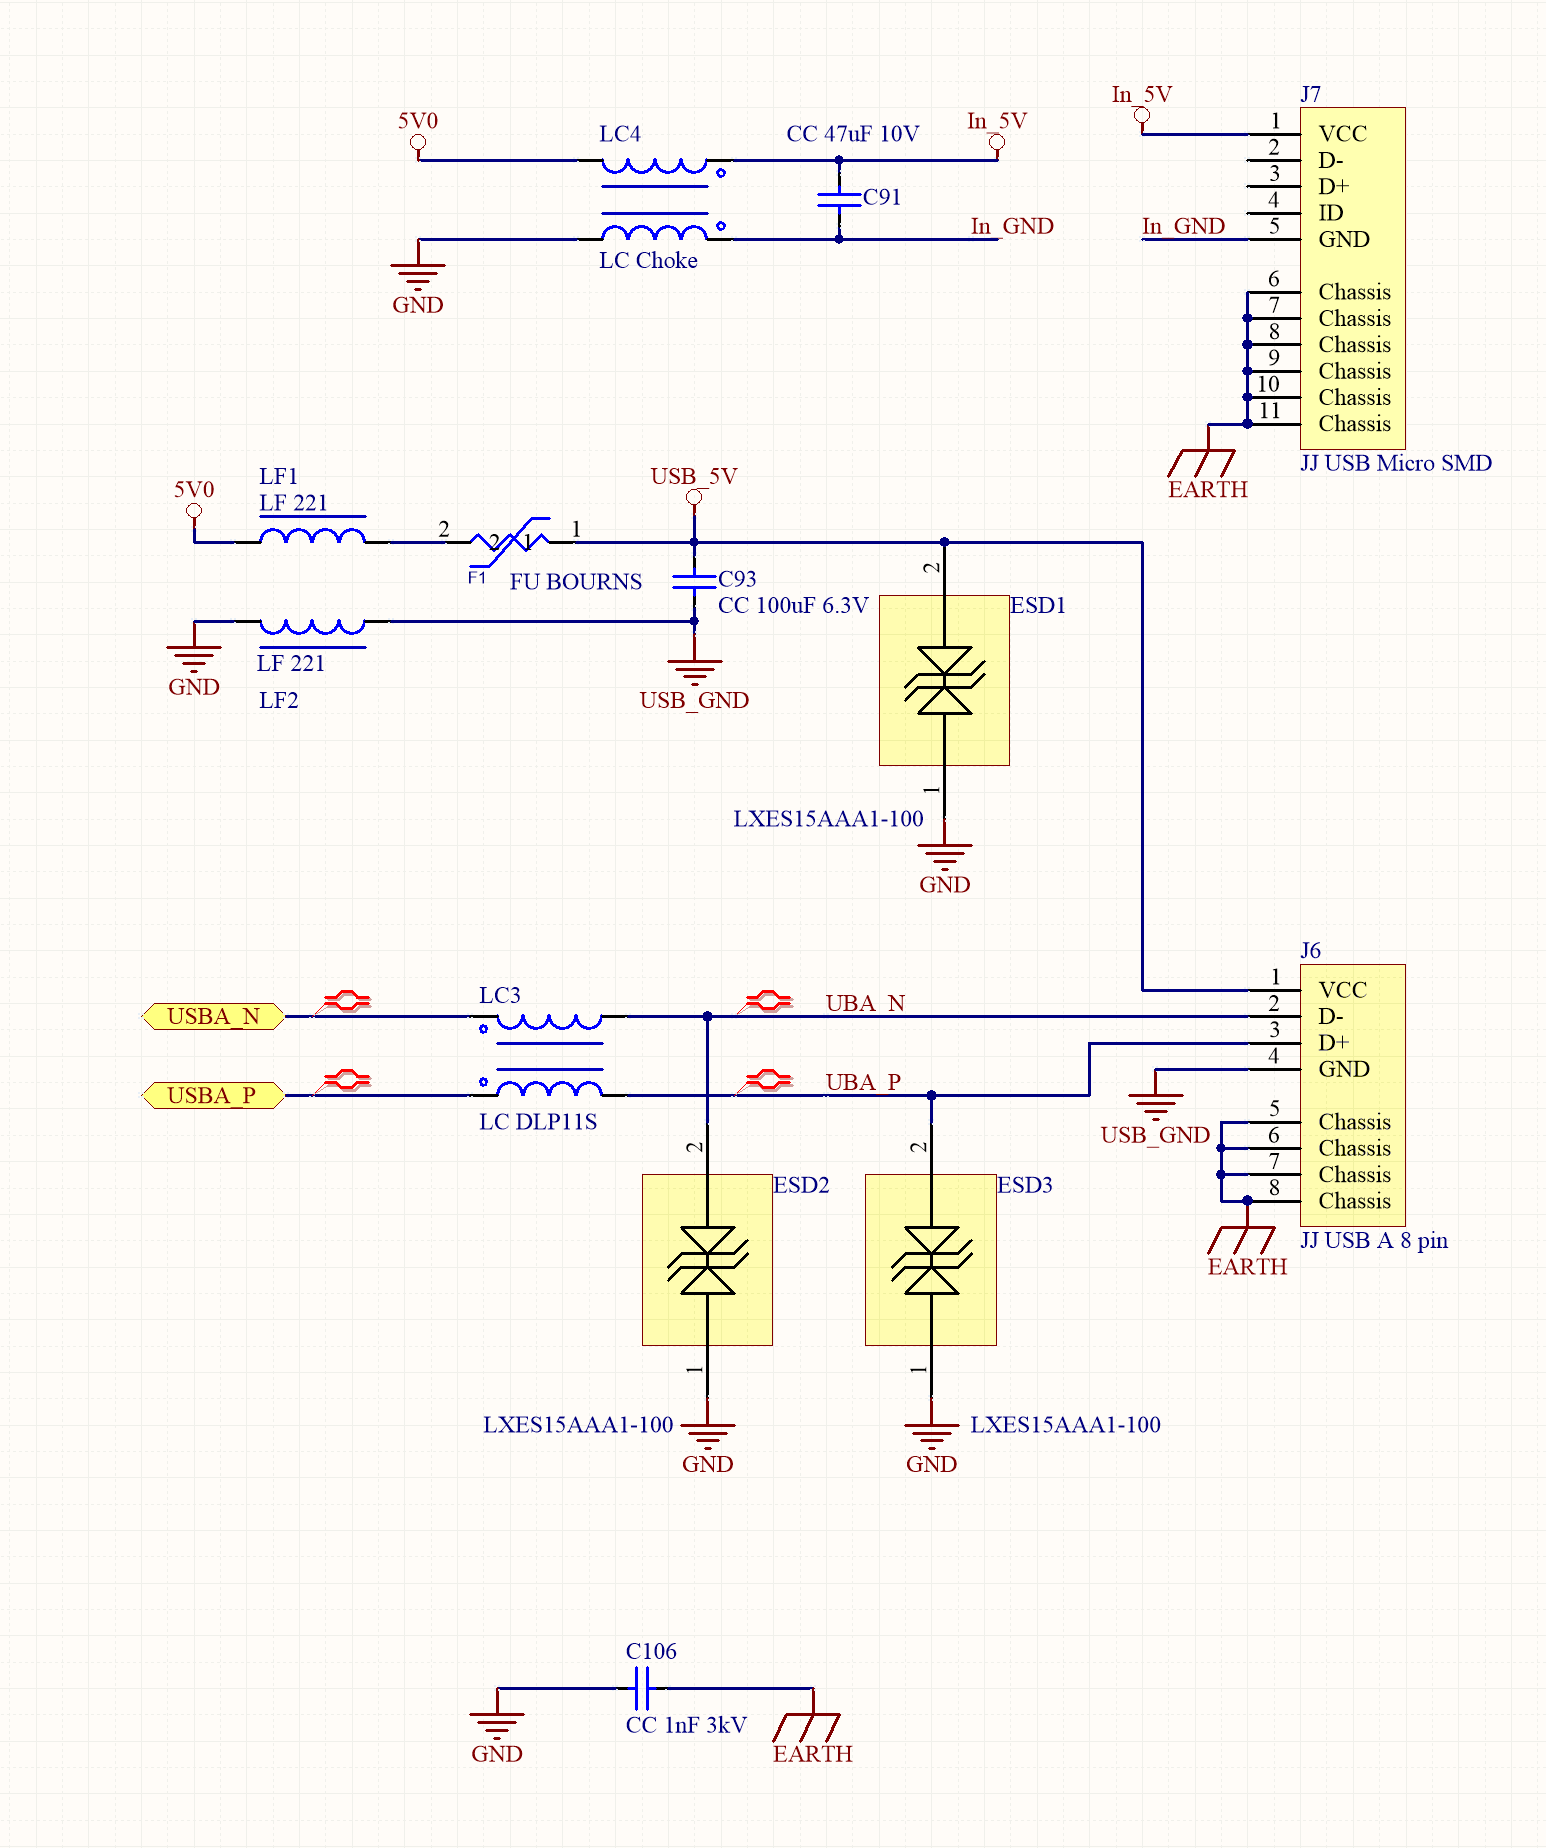 How to design the USB circuitry Usb Cable Wiring Diagram Shield on usb electrical diagram, usb cable cable, usb connections diagram, usb cable pinout, usb 2.0 schematic, usb b diagram, usb color diagram, usb camera diagram, usb cable assembly, usb to rca wiring-diagram, usb wall charger amazon, usb to db9 wiring-diagram, usb to ps 2 mouse wiring, usb 2.0 cable diagram, usb to serial wiring-diagram, usb cable types, usb pinout diagram, usb cable switch, usb cable drawing, usb otg diagram,